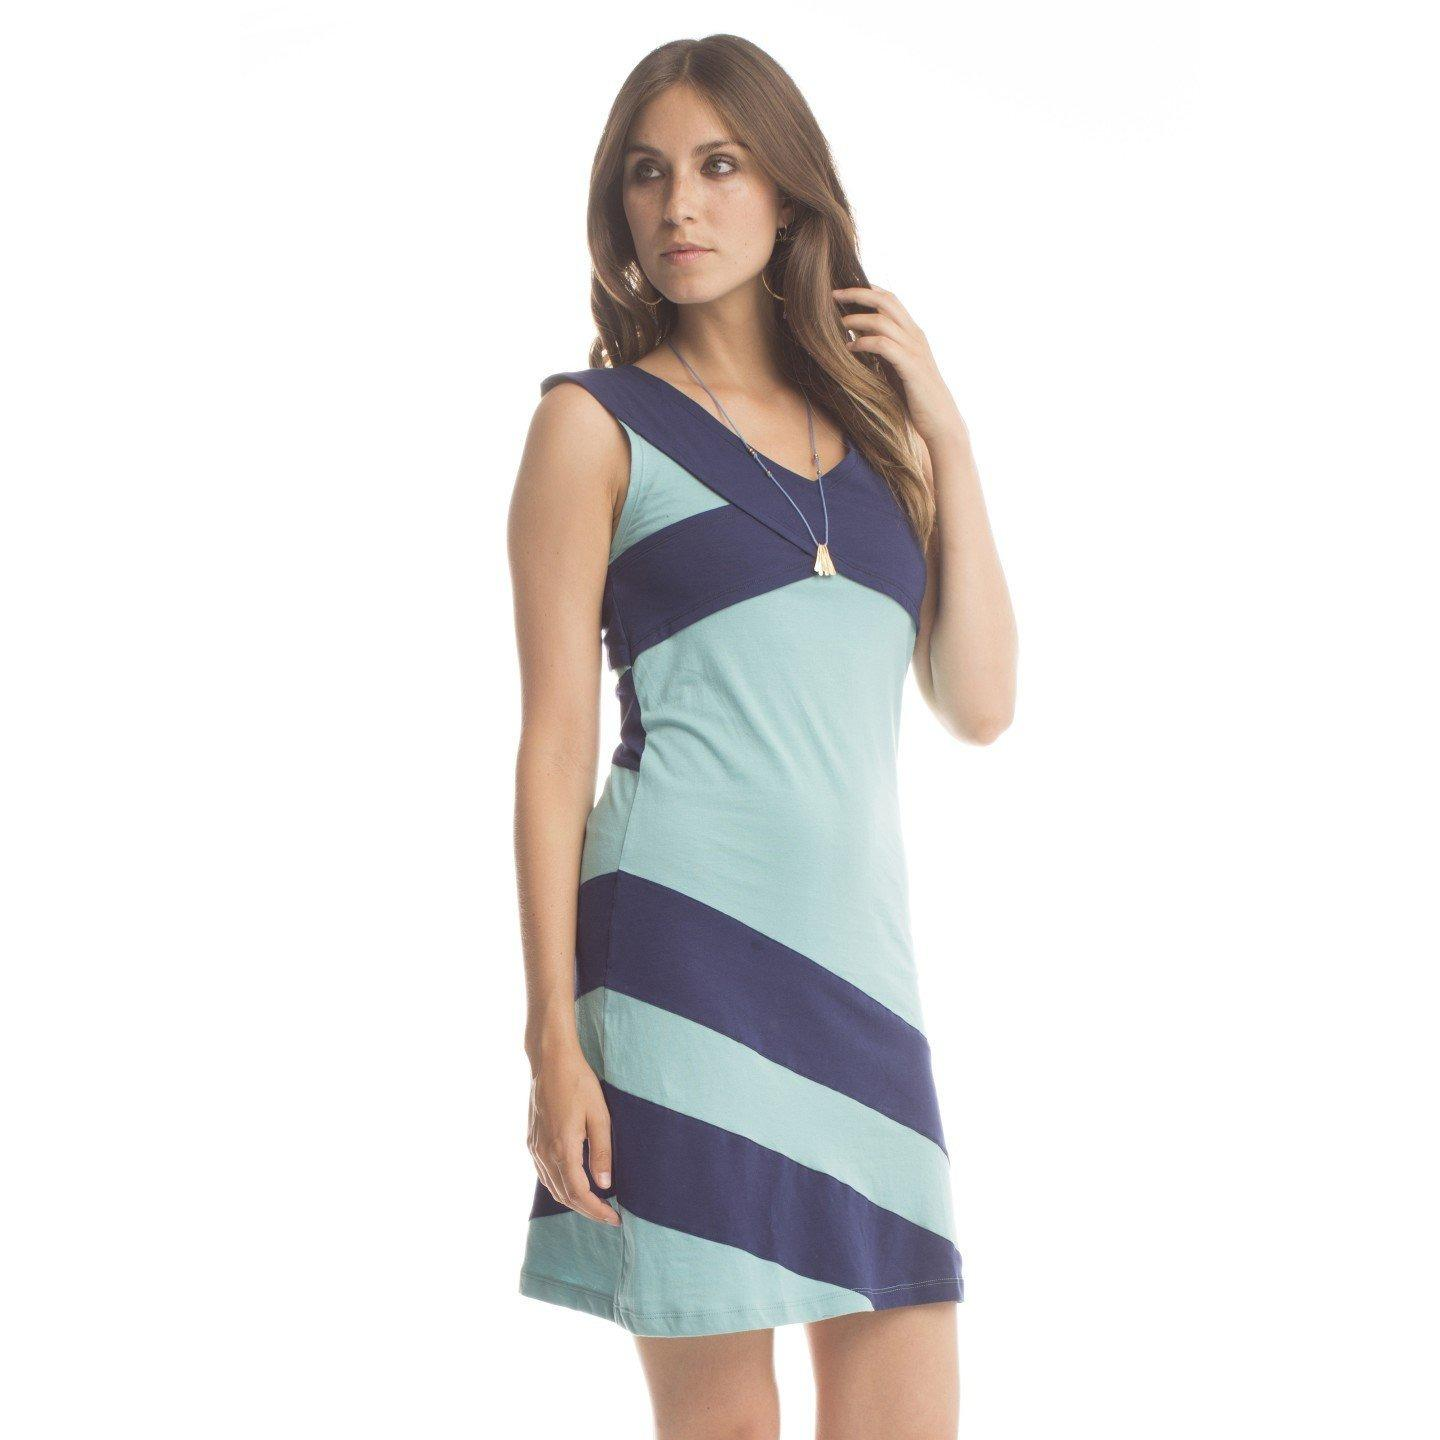 Synergy Organic Clothing Criss Cross Dress - Aquamarine/Sapphire - Robinsons Nest